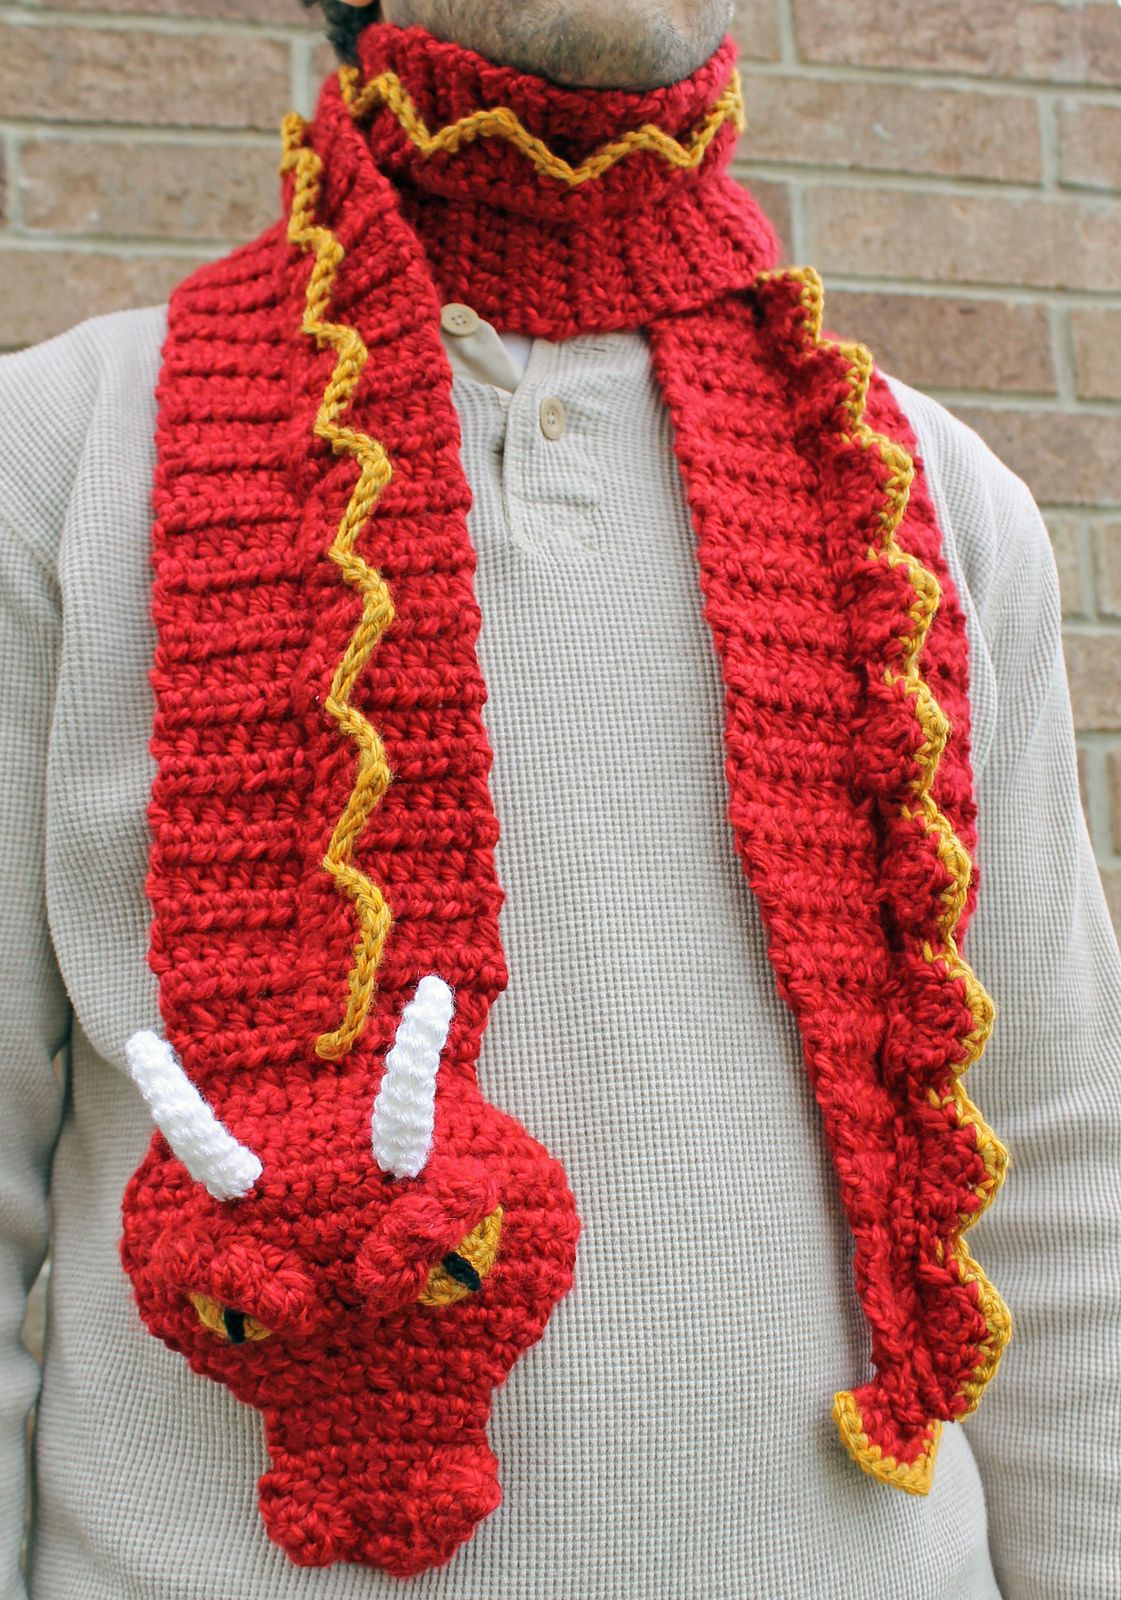 Dragon Scarf pattern by Joni Memmott / BriAbby | Craft Ideas ...